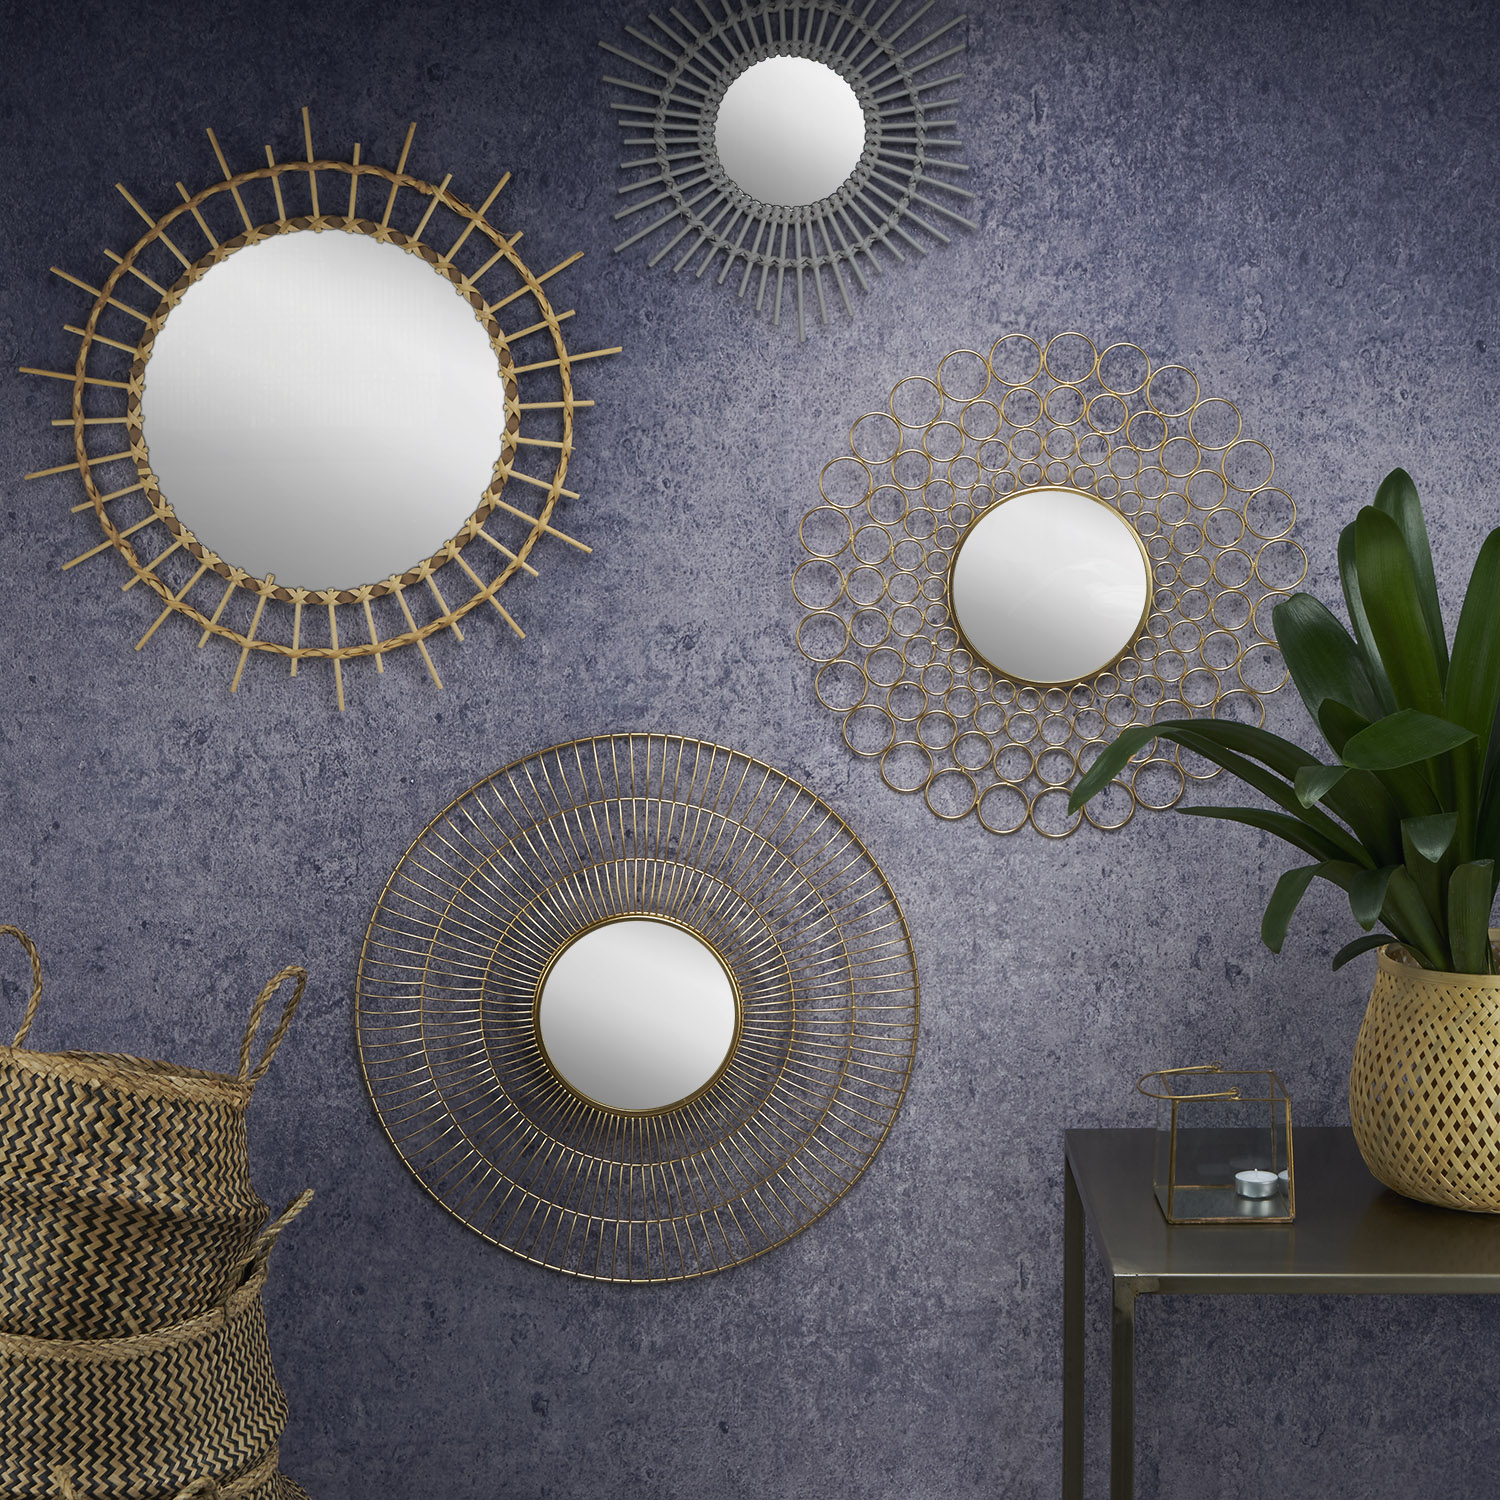 ound decorative Mirror, natural rattan, star shape, boho chic, nordic style, for hallway or bathroom